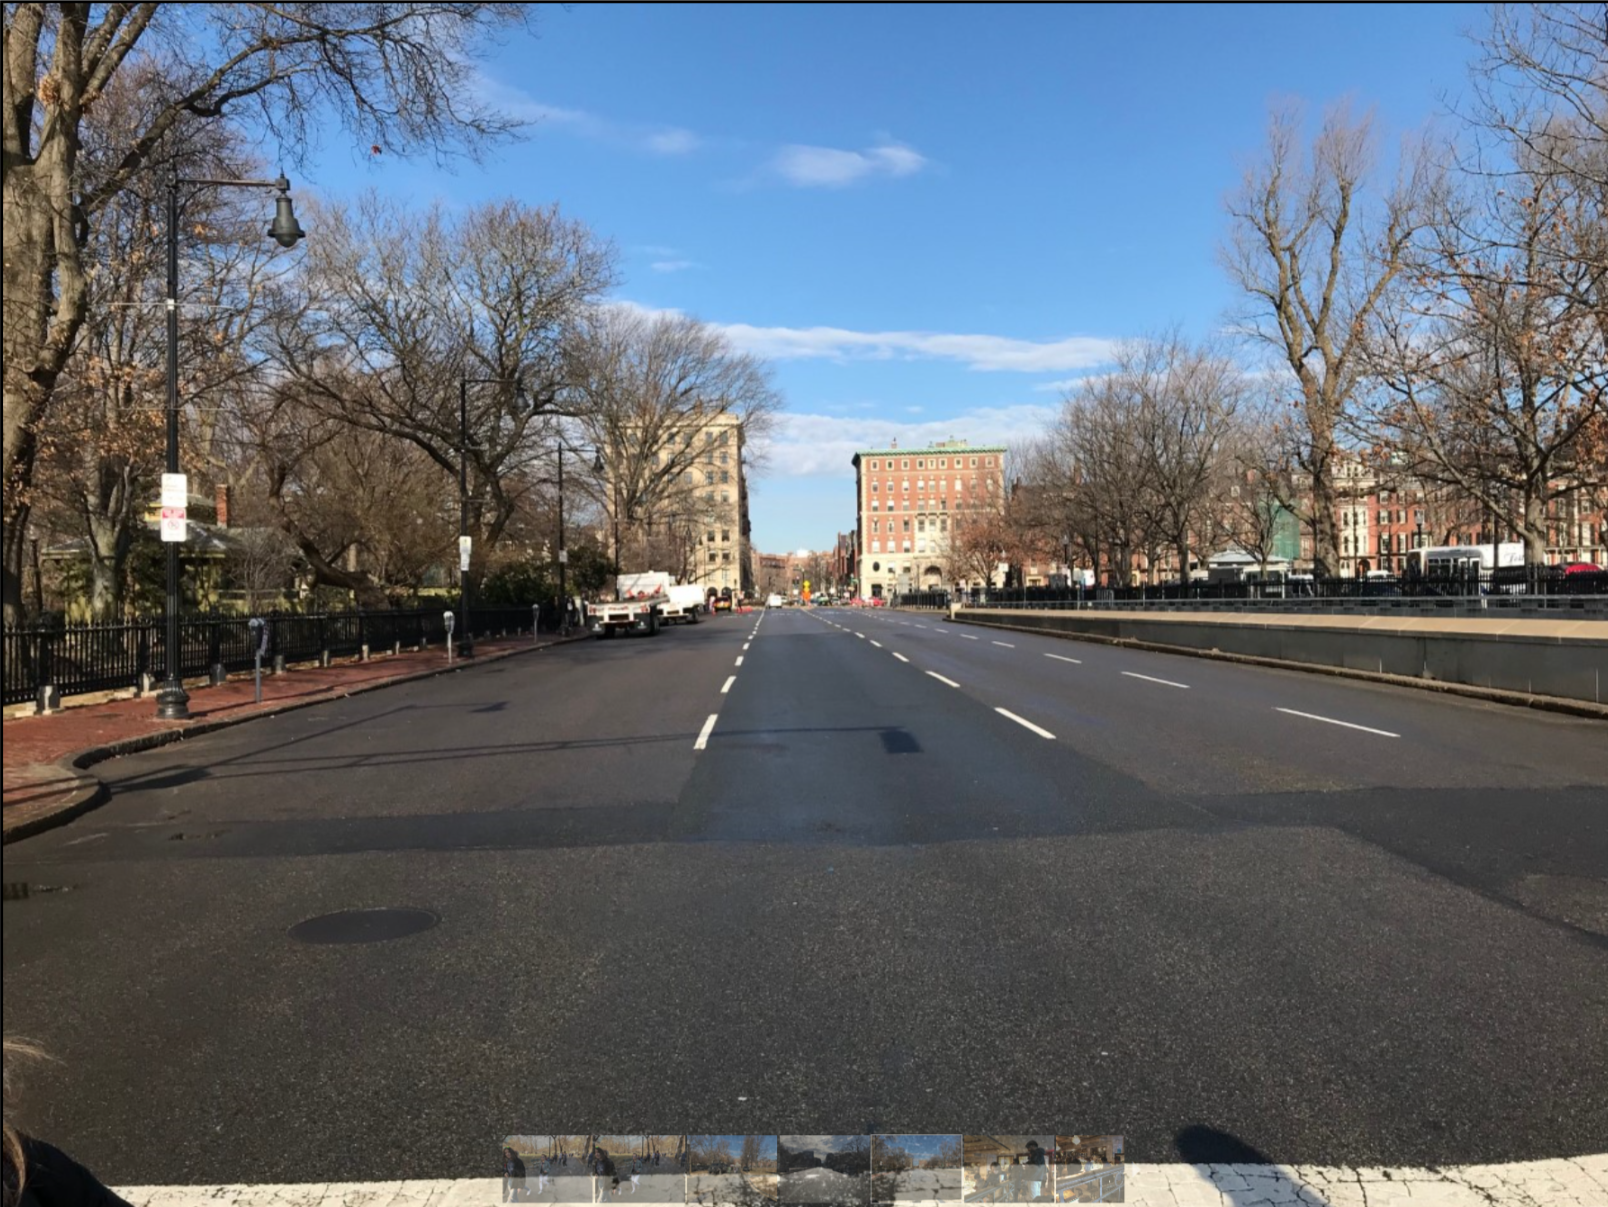 The police used their rich experience with all-sports championship celebrations to close off key streets. This one, Charles Street, between the Common and the Public Garden, was key.